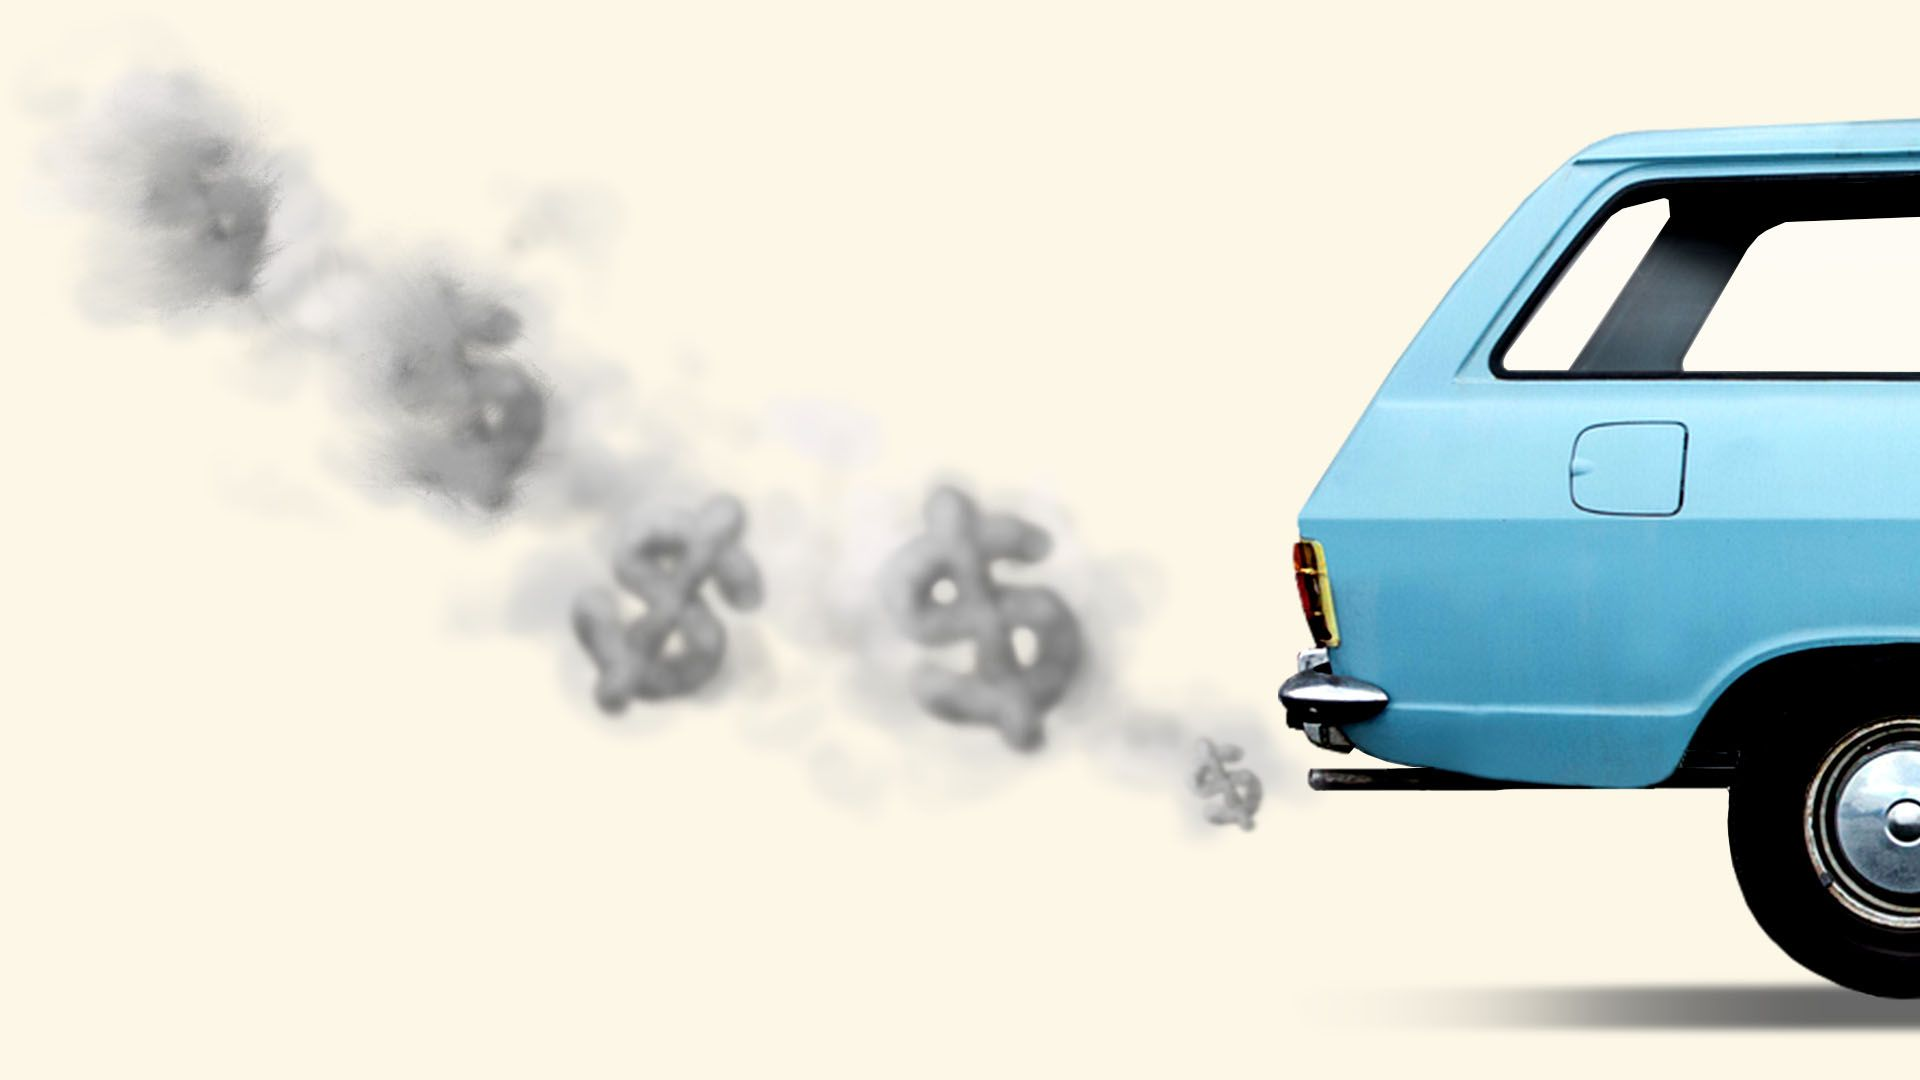 Illustration of a car with exhaust in the shape of dollar signs